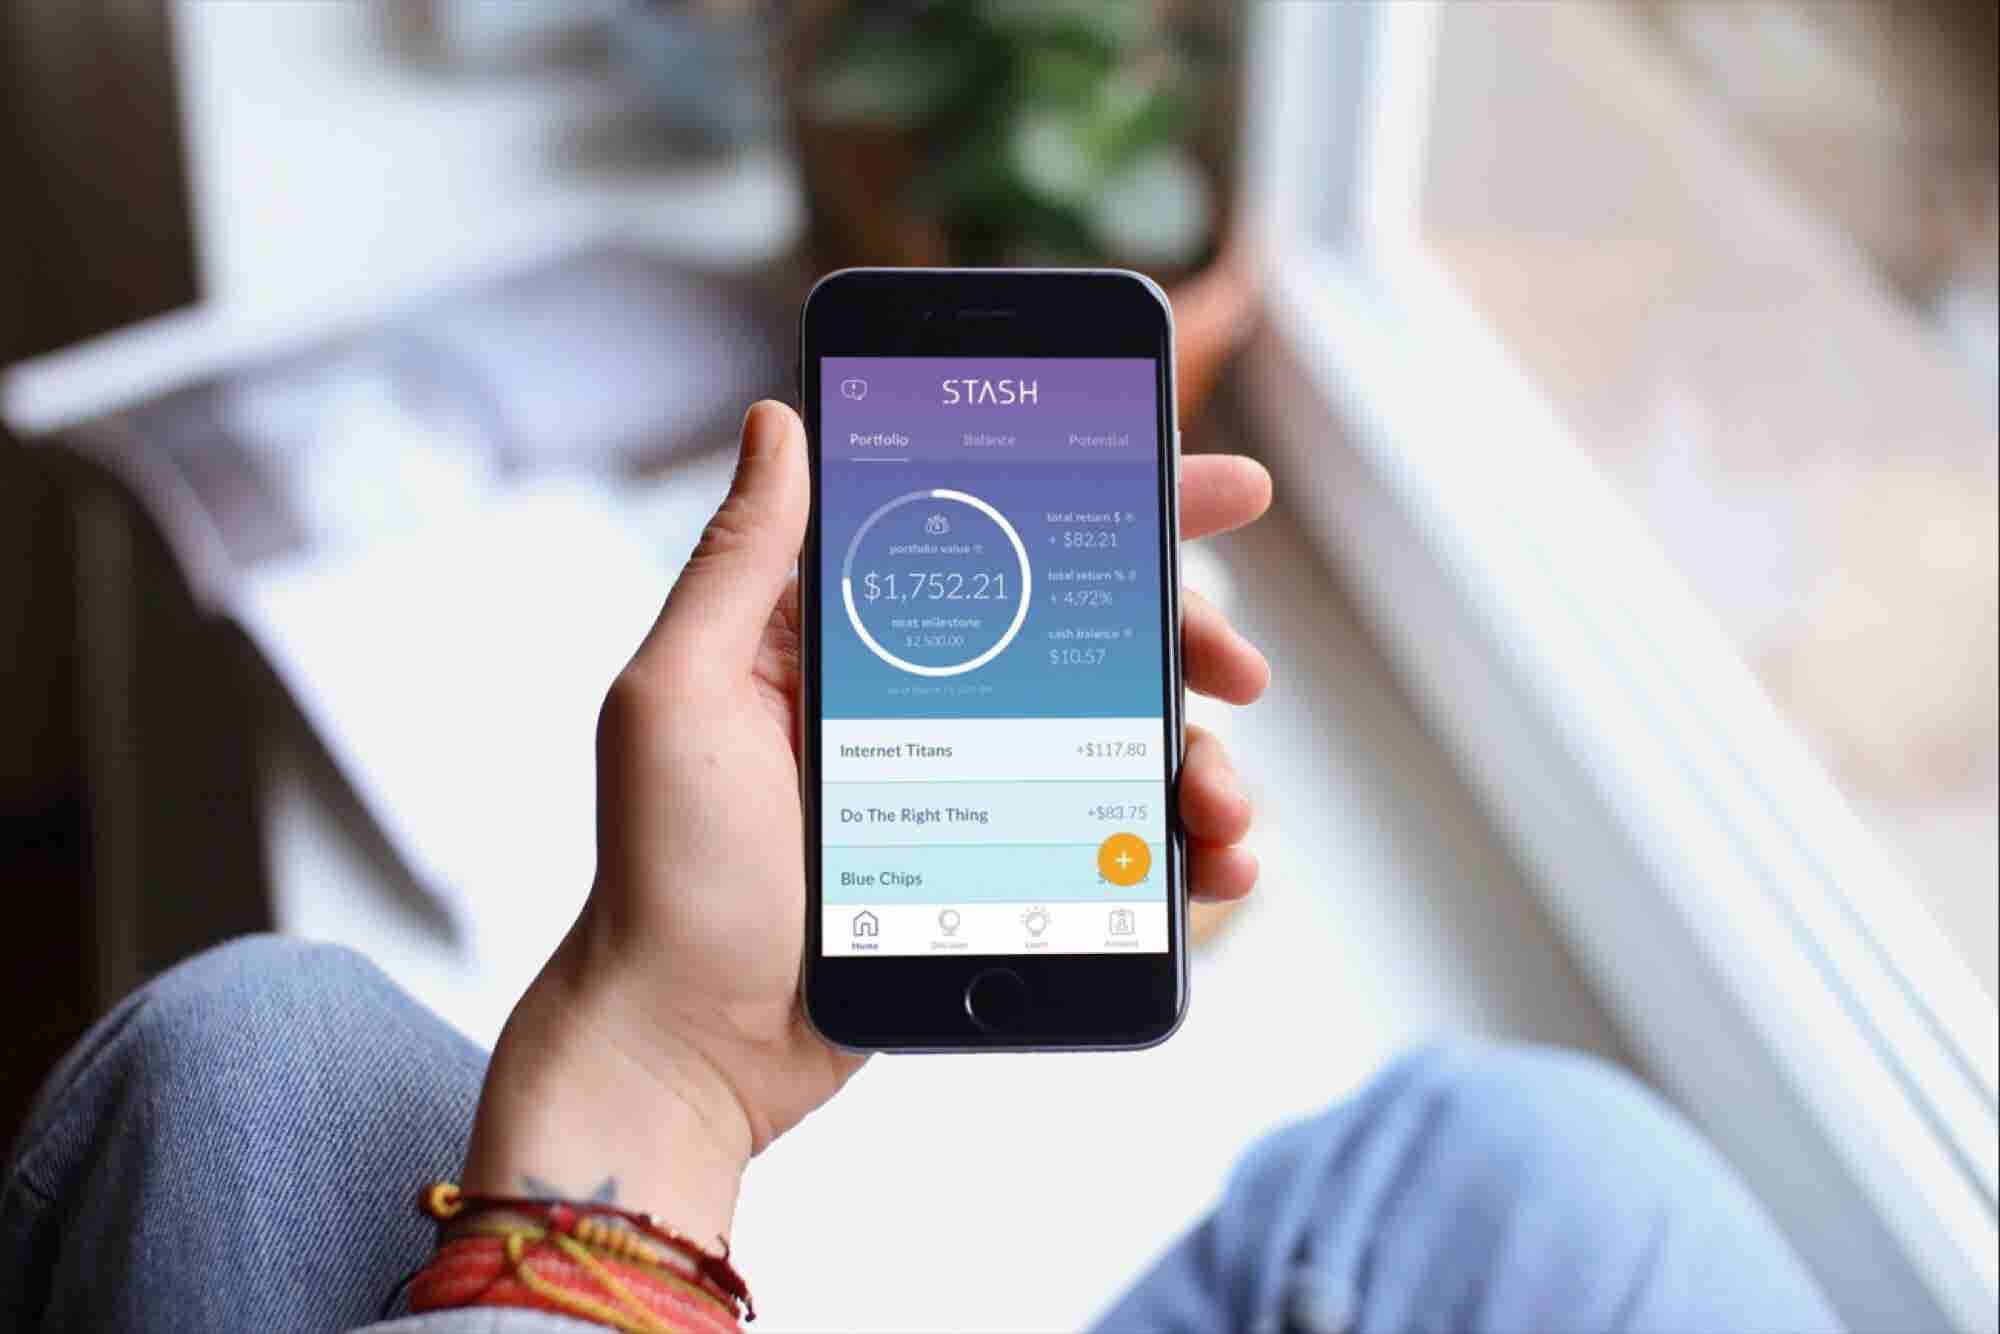 13 Easy Investing Apps and Websites for Millennials